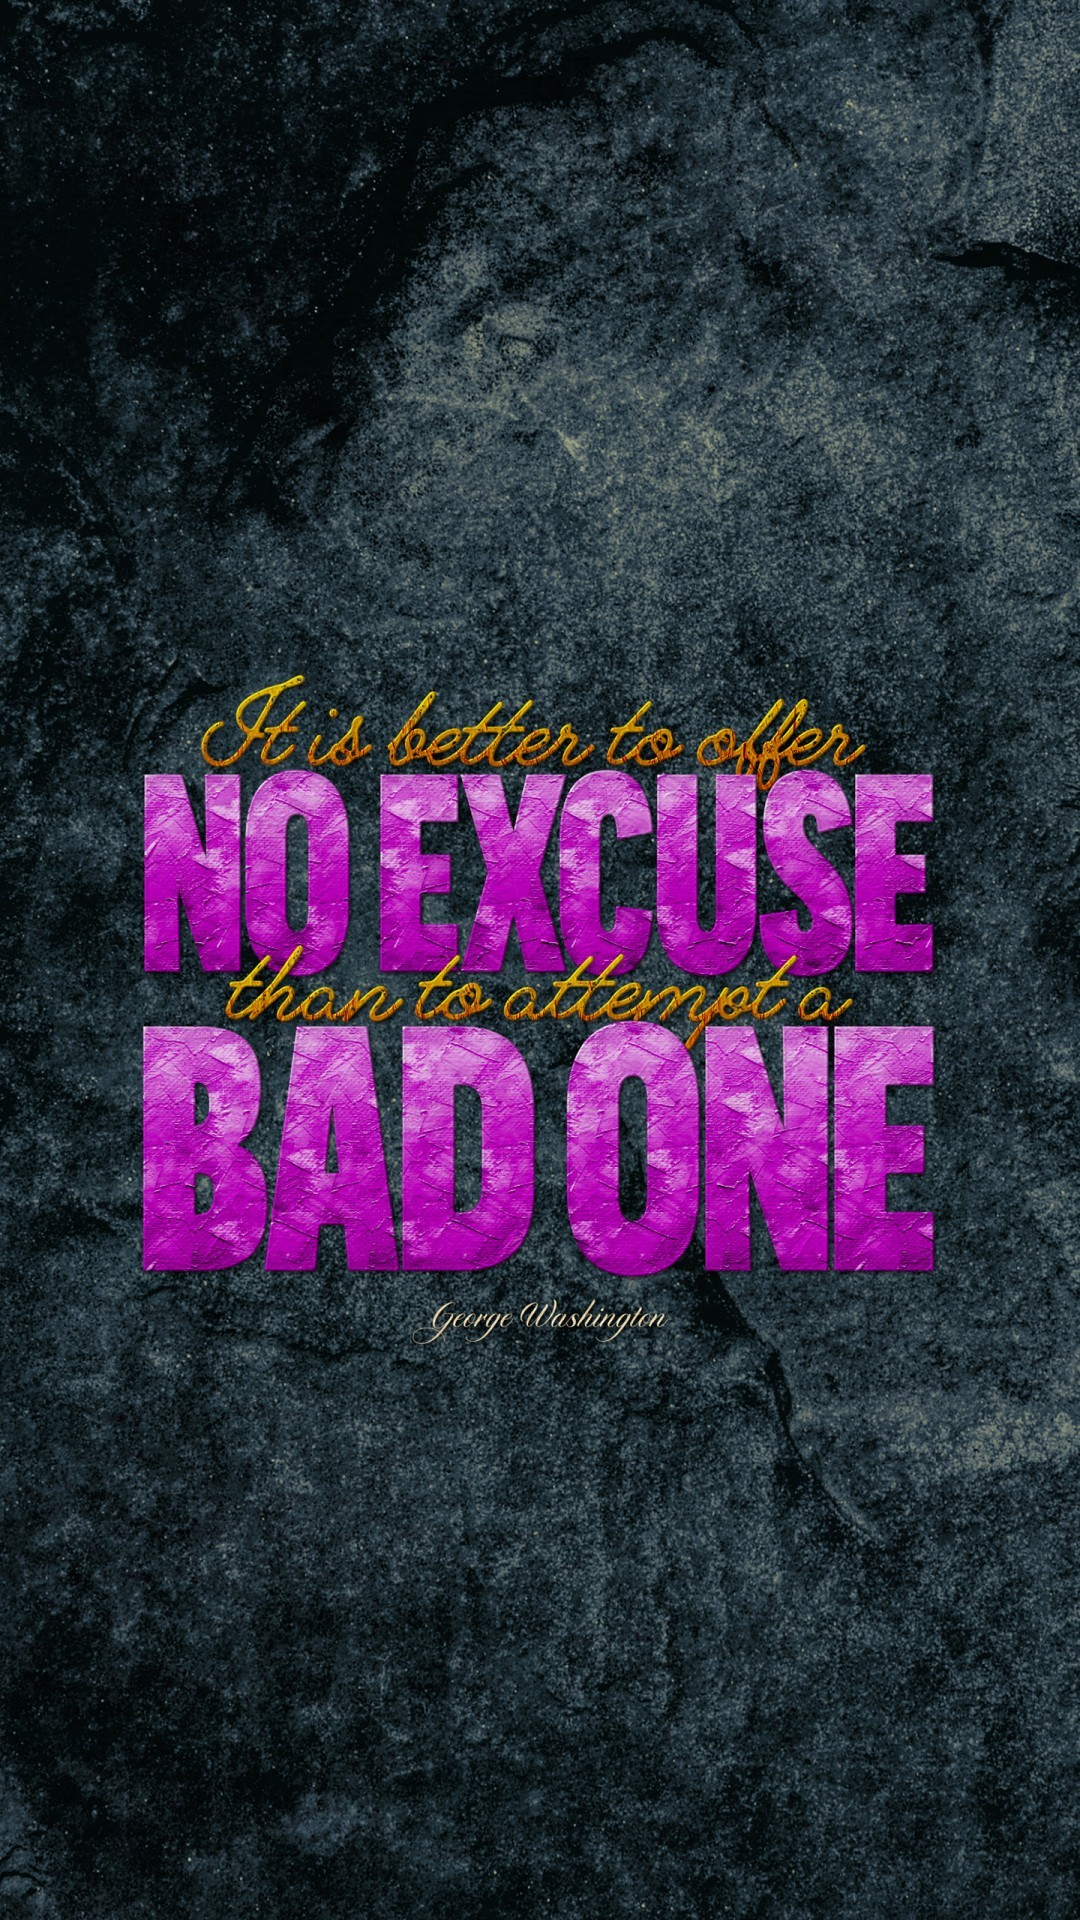 Free Offer no excuse for Bad one Quote phone wallpaper by chey00